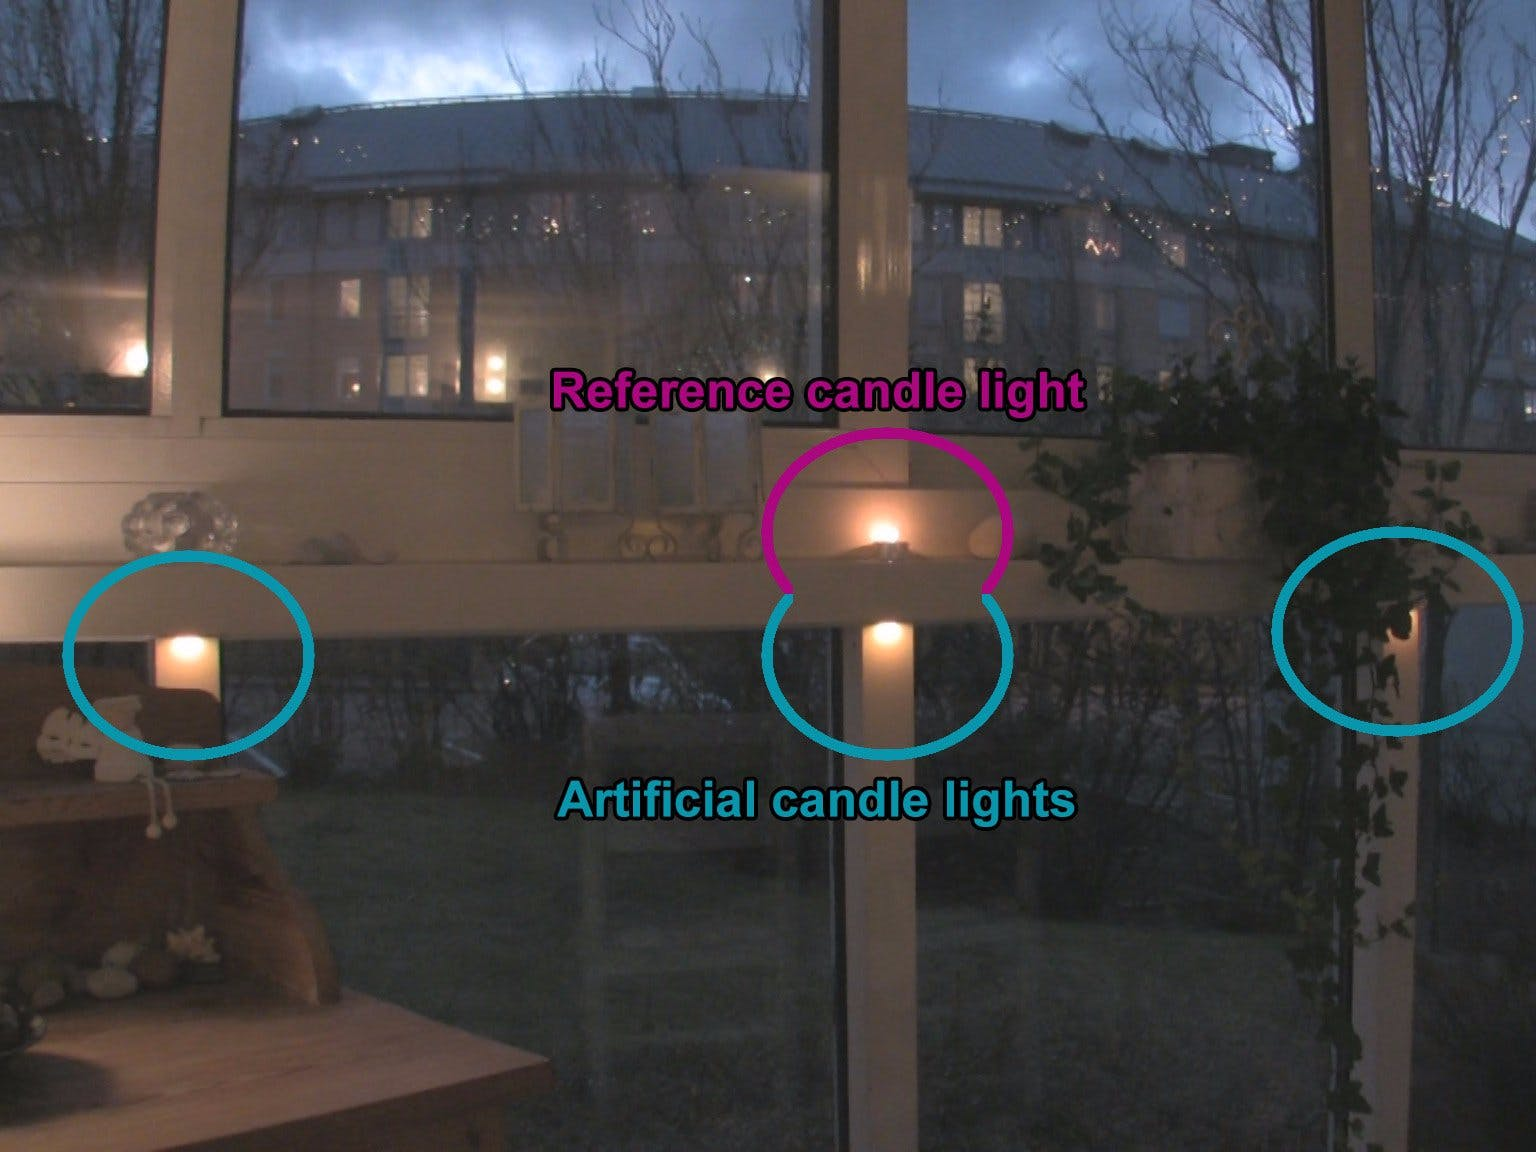 Arduino Controlled Artificial Candle Lights